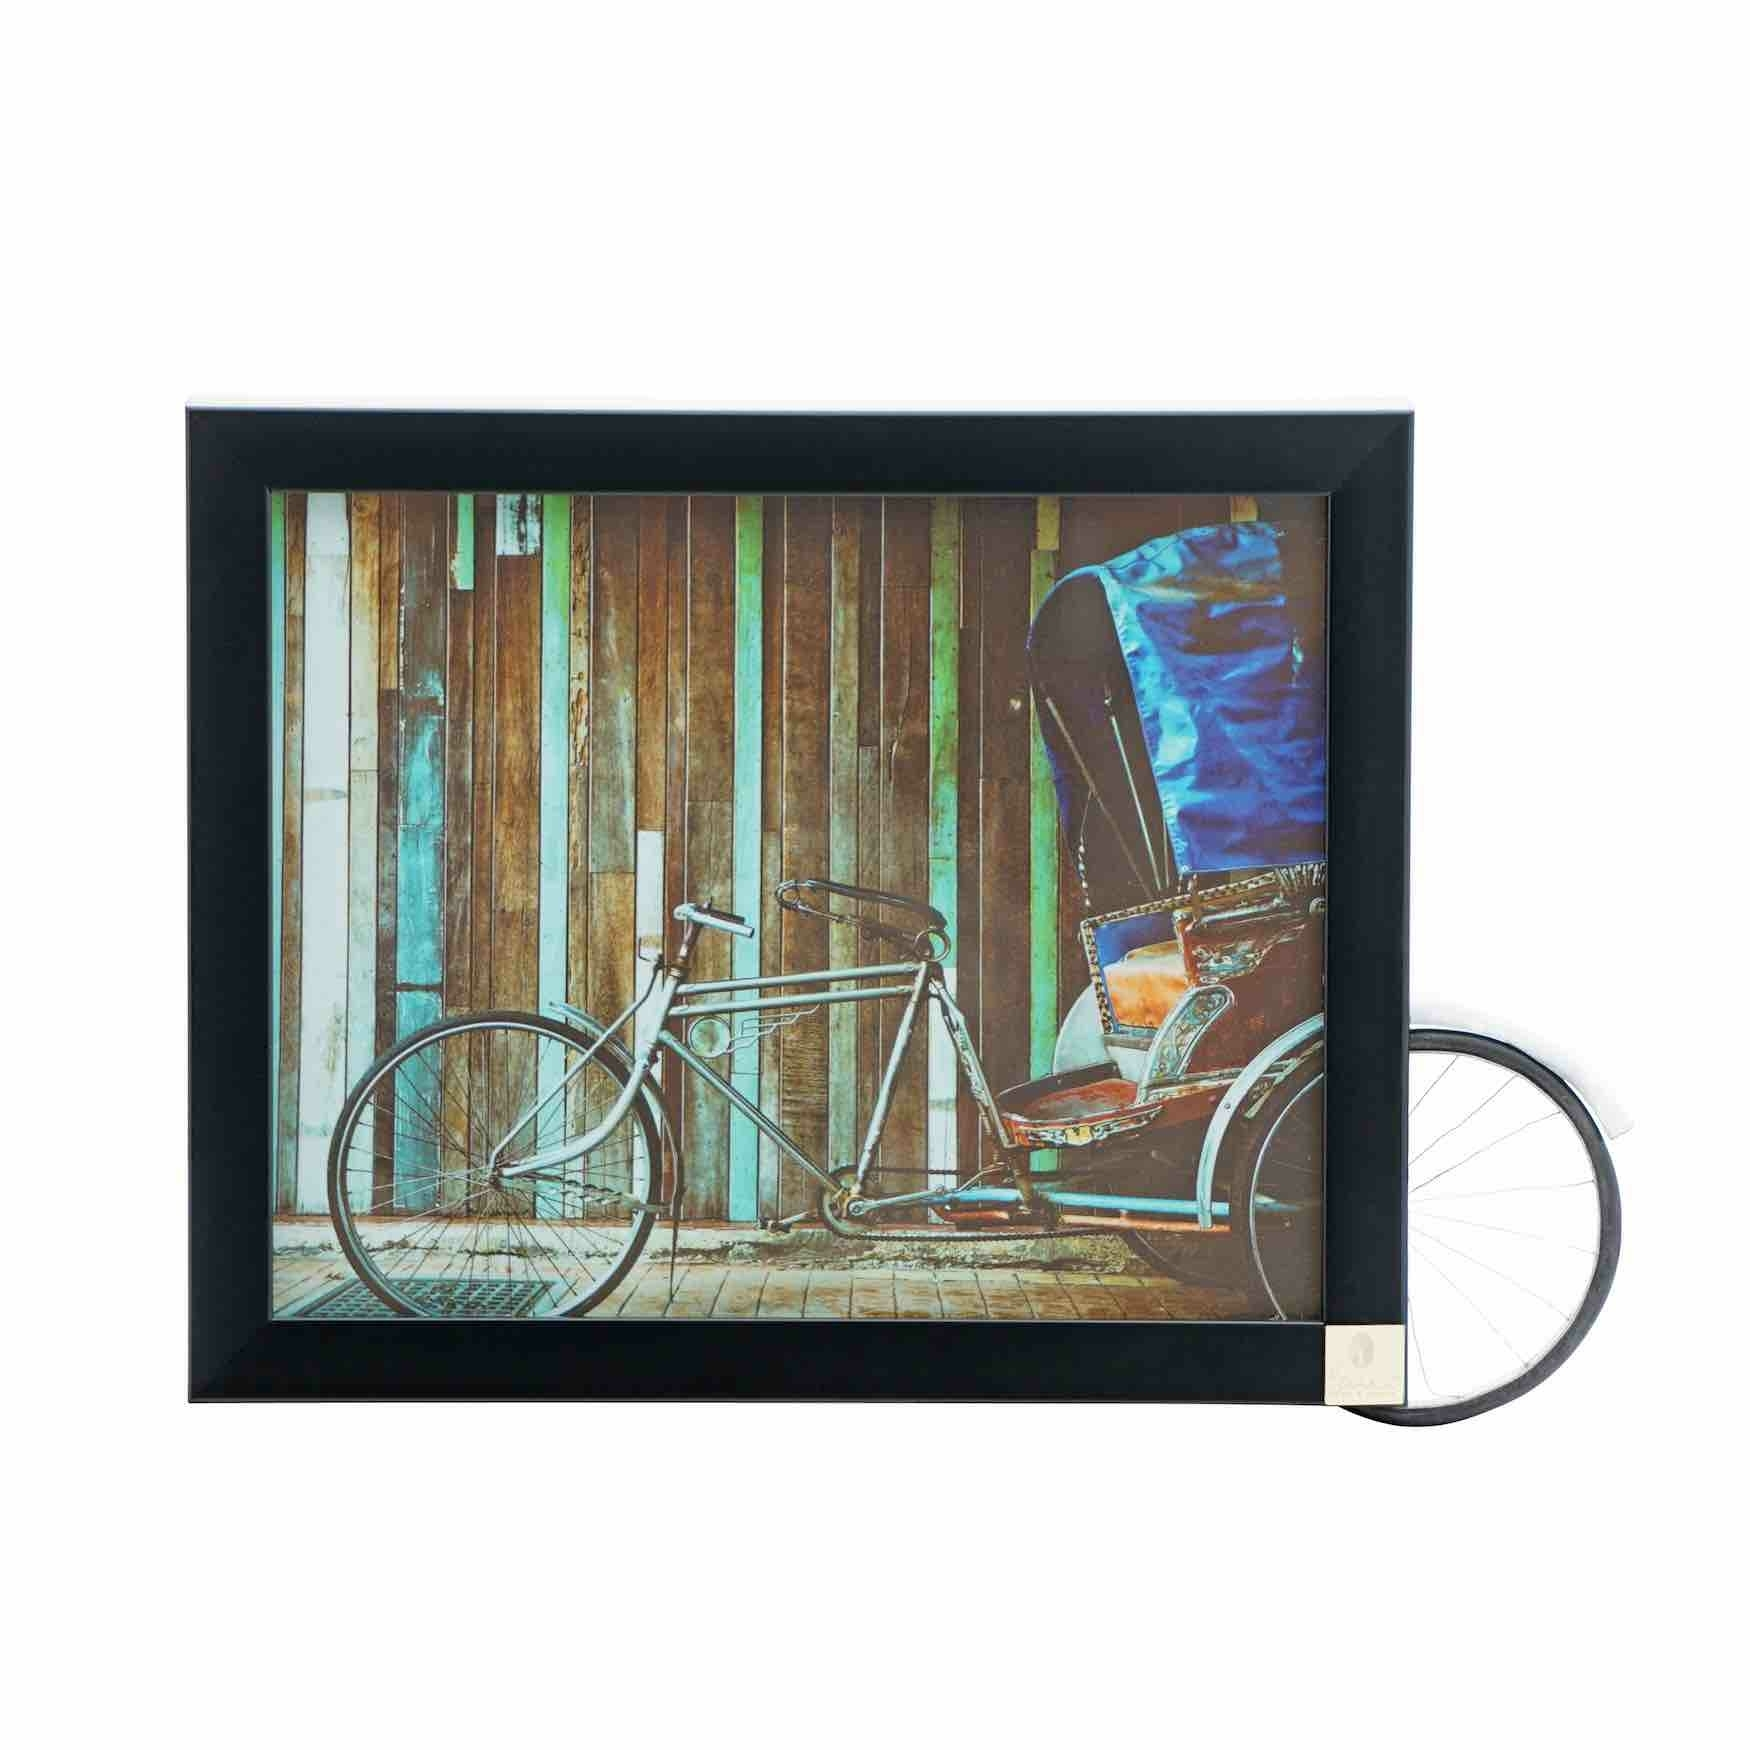 Shop For Isaaka Creations Horizontal Risksaw Wall Art Online! Intended For Most Current Horizontal Wall Art (View 15 of 20)